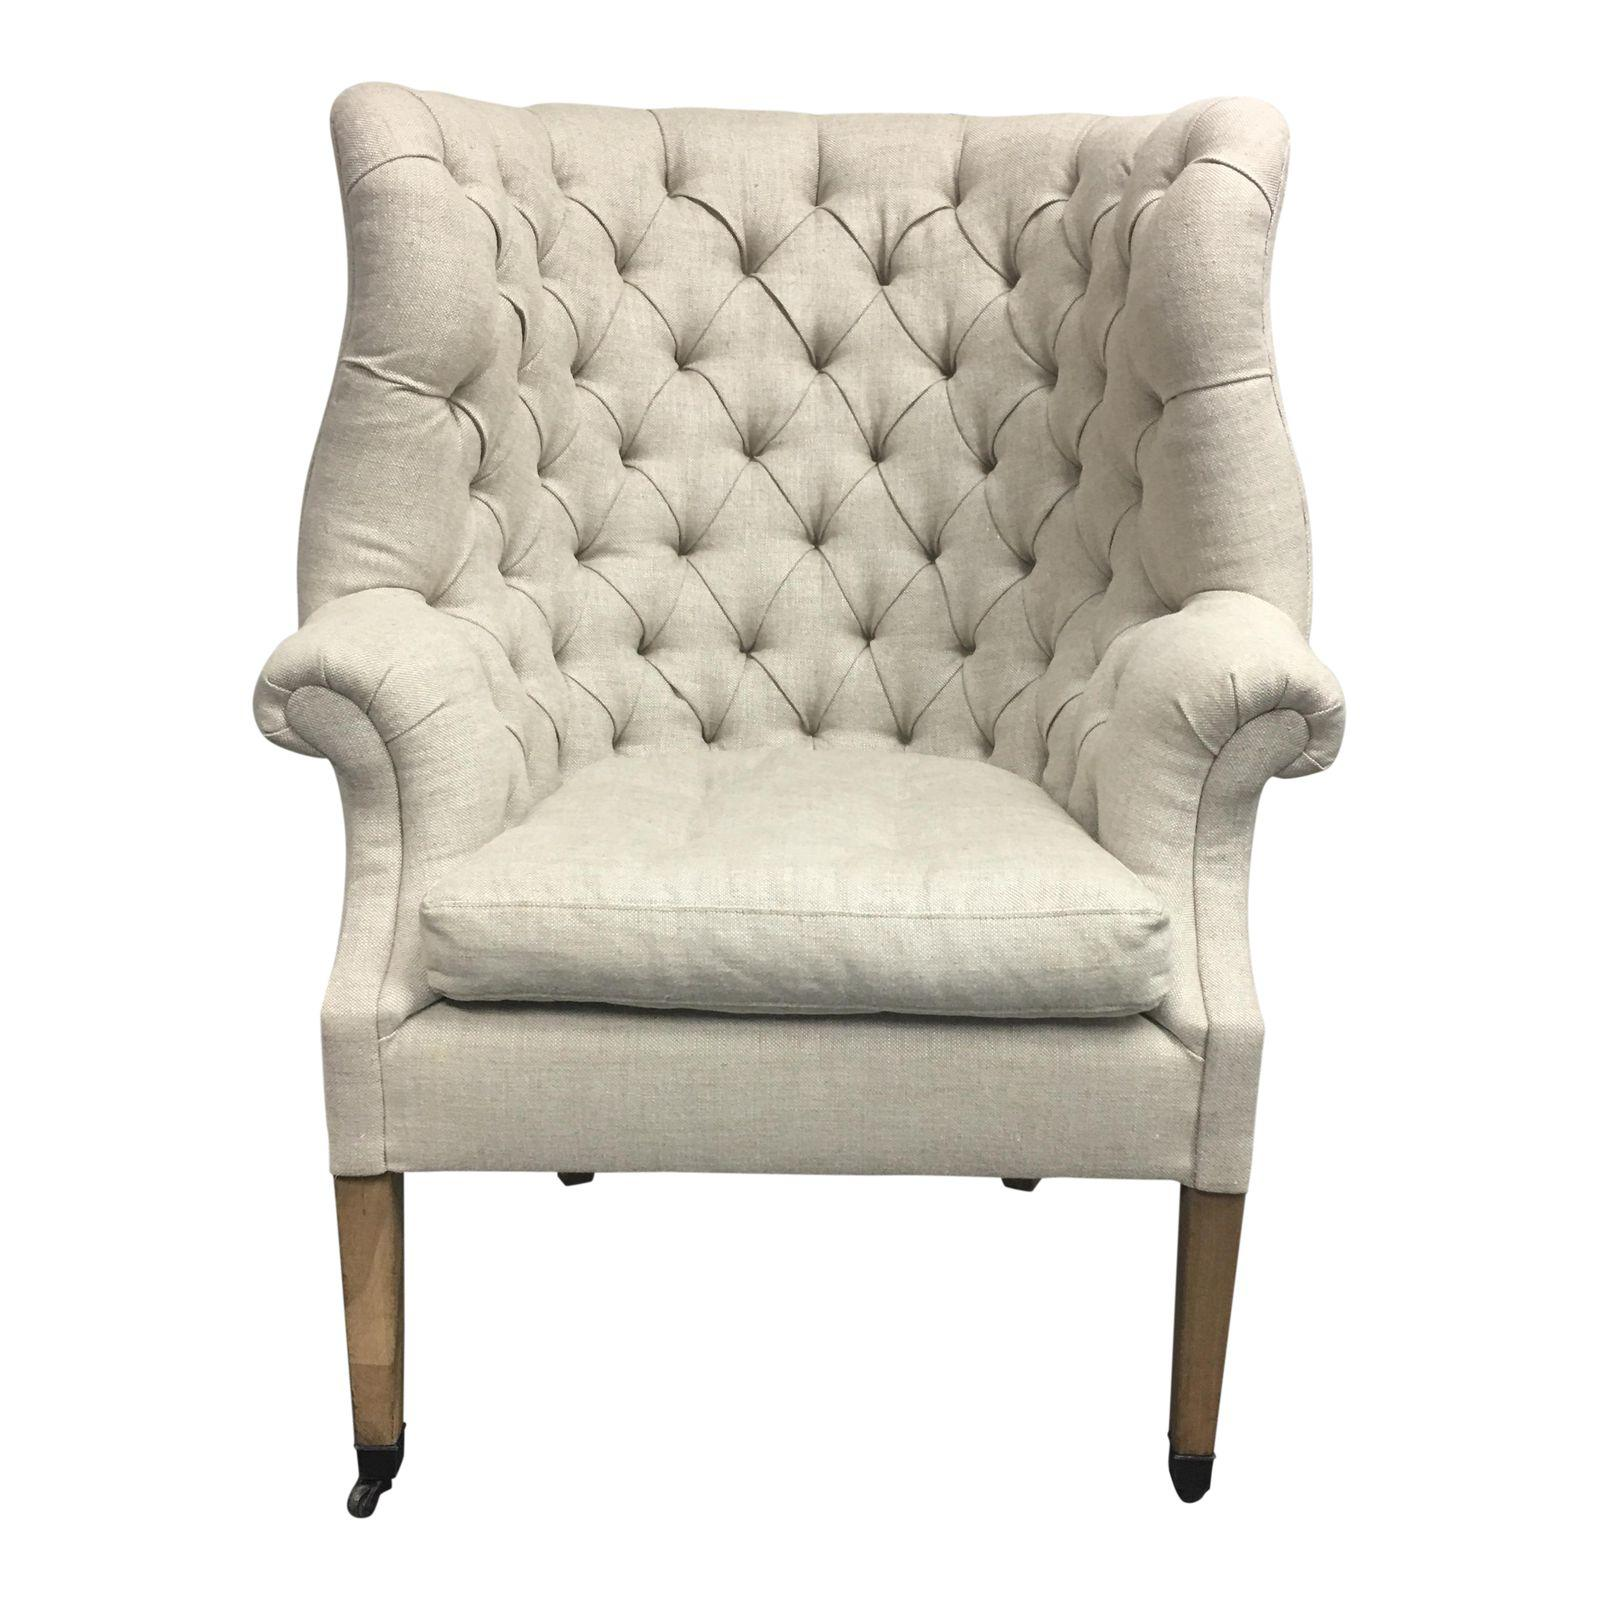 Attirant Restoration Hardware 19th Century English Wingback Chair. Original Price:  $2,295.00